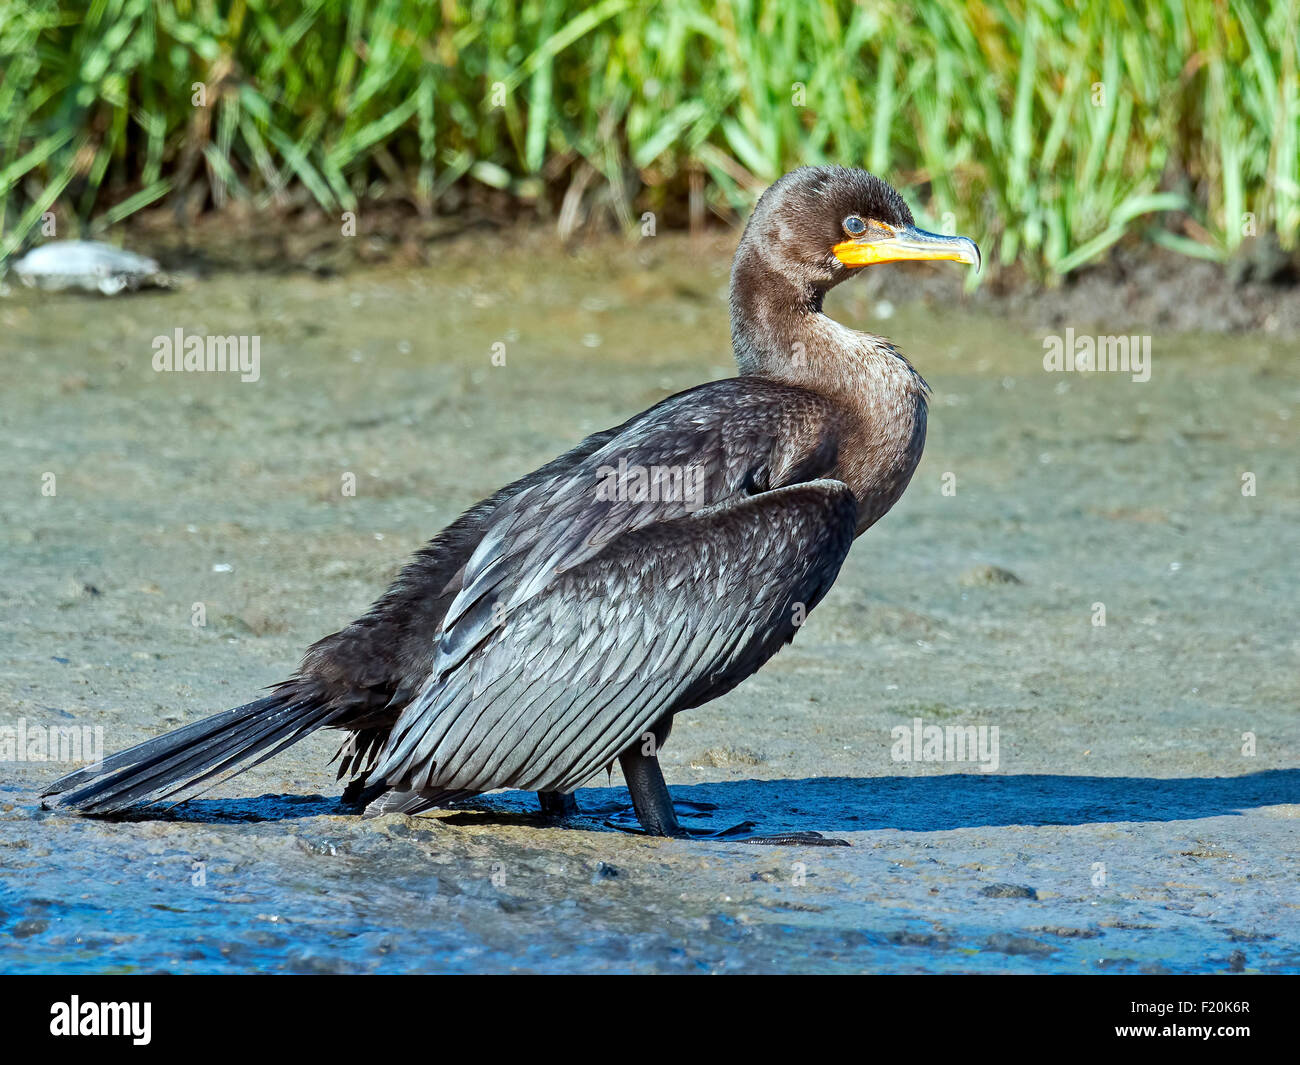 Double-crested Cormorant standing in the Marsh - Stock Image